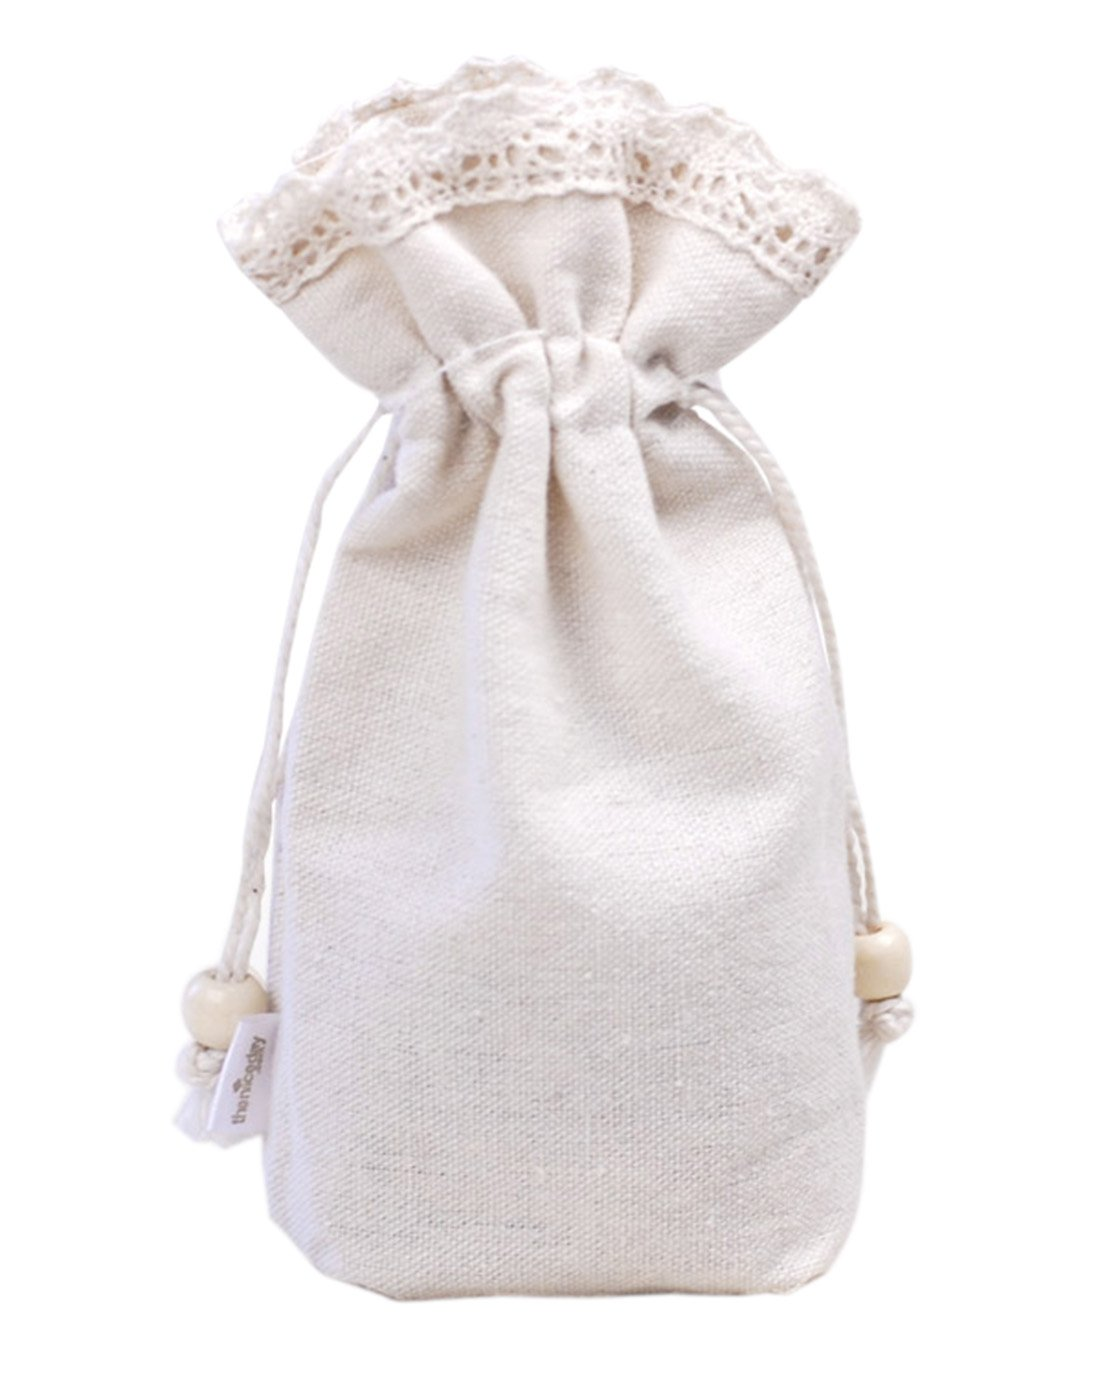 autulet Cool Drawstring Bags Girls Drawstring Bag White Cotton Party Wedding Lace Bags 50Pieces